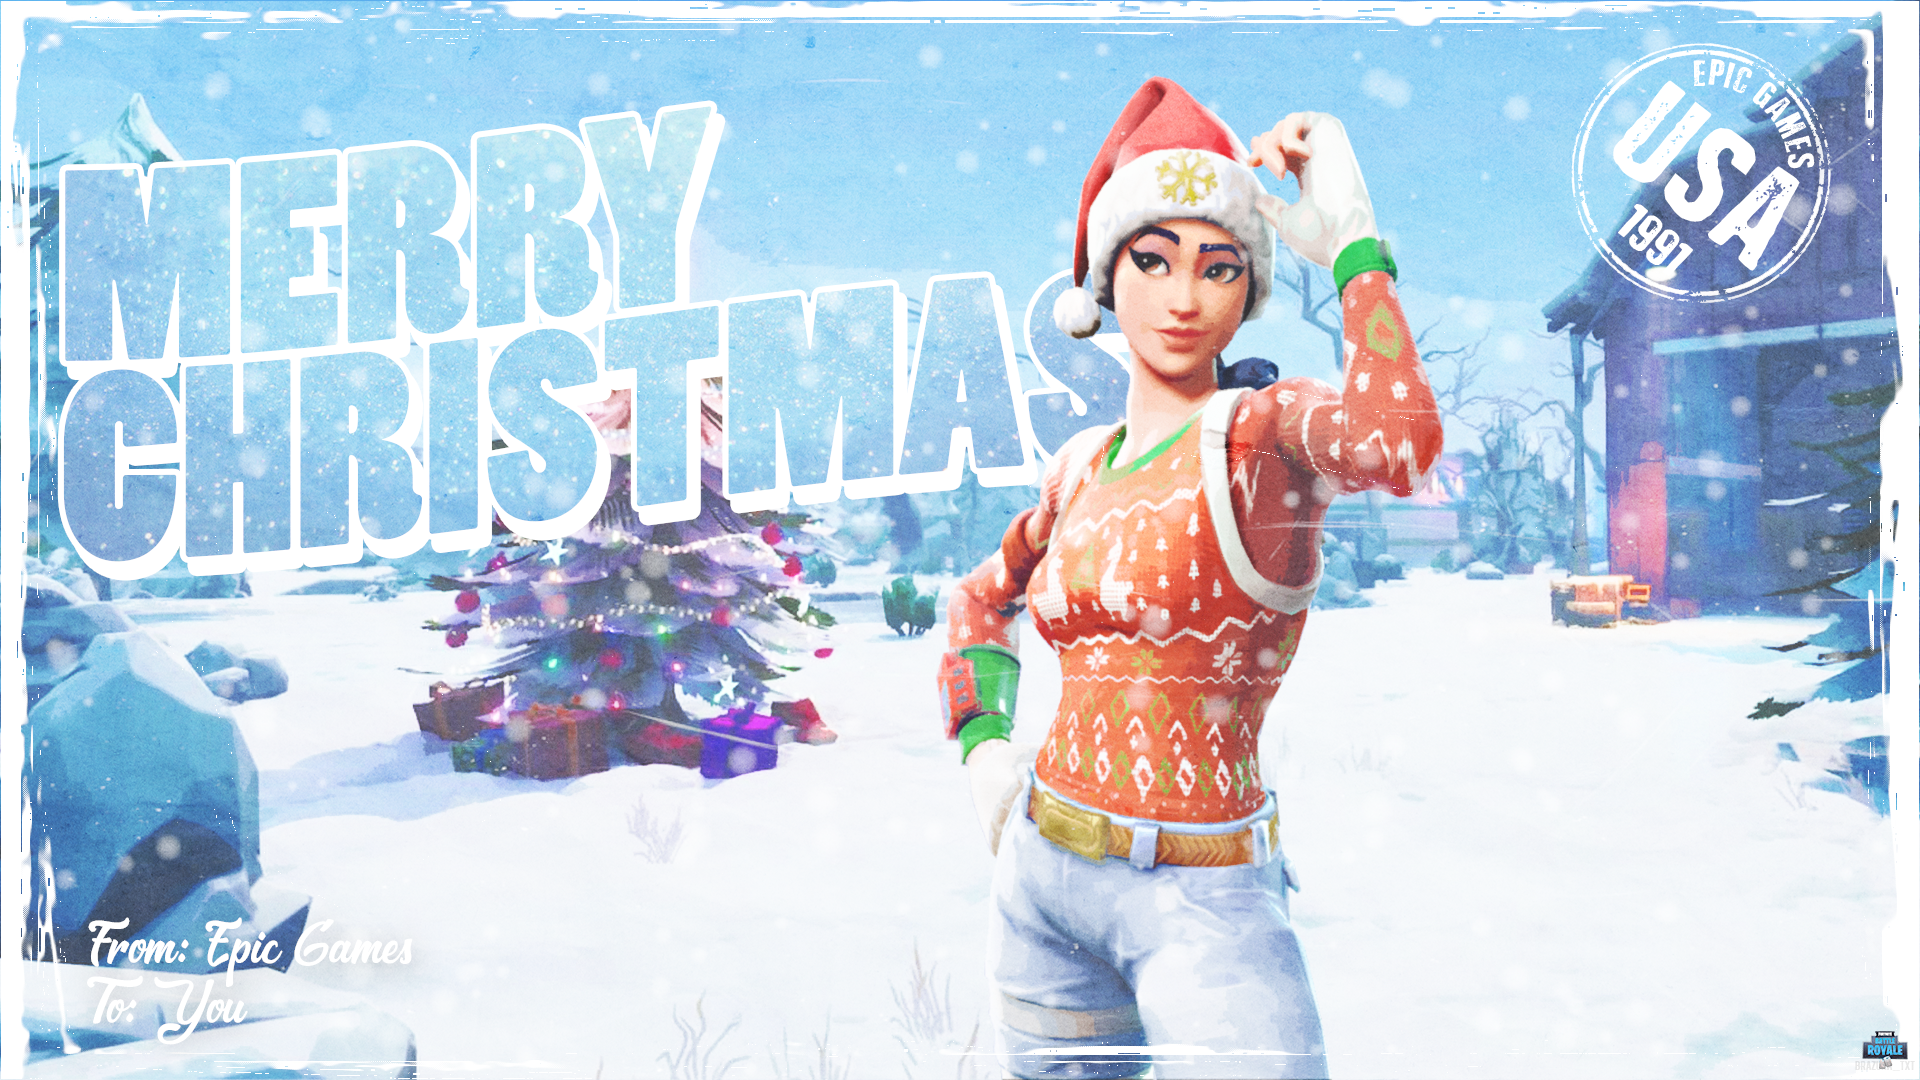 13 Fortnite Christmas Wallpaper For iPhone Android and Desktop 1920x1080